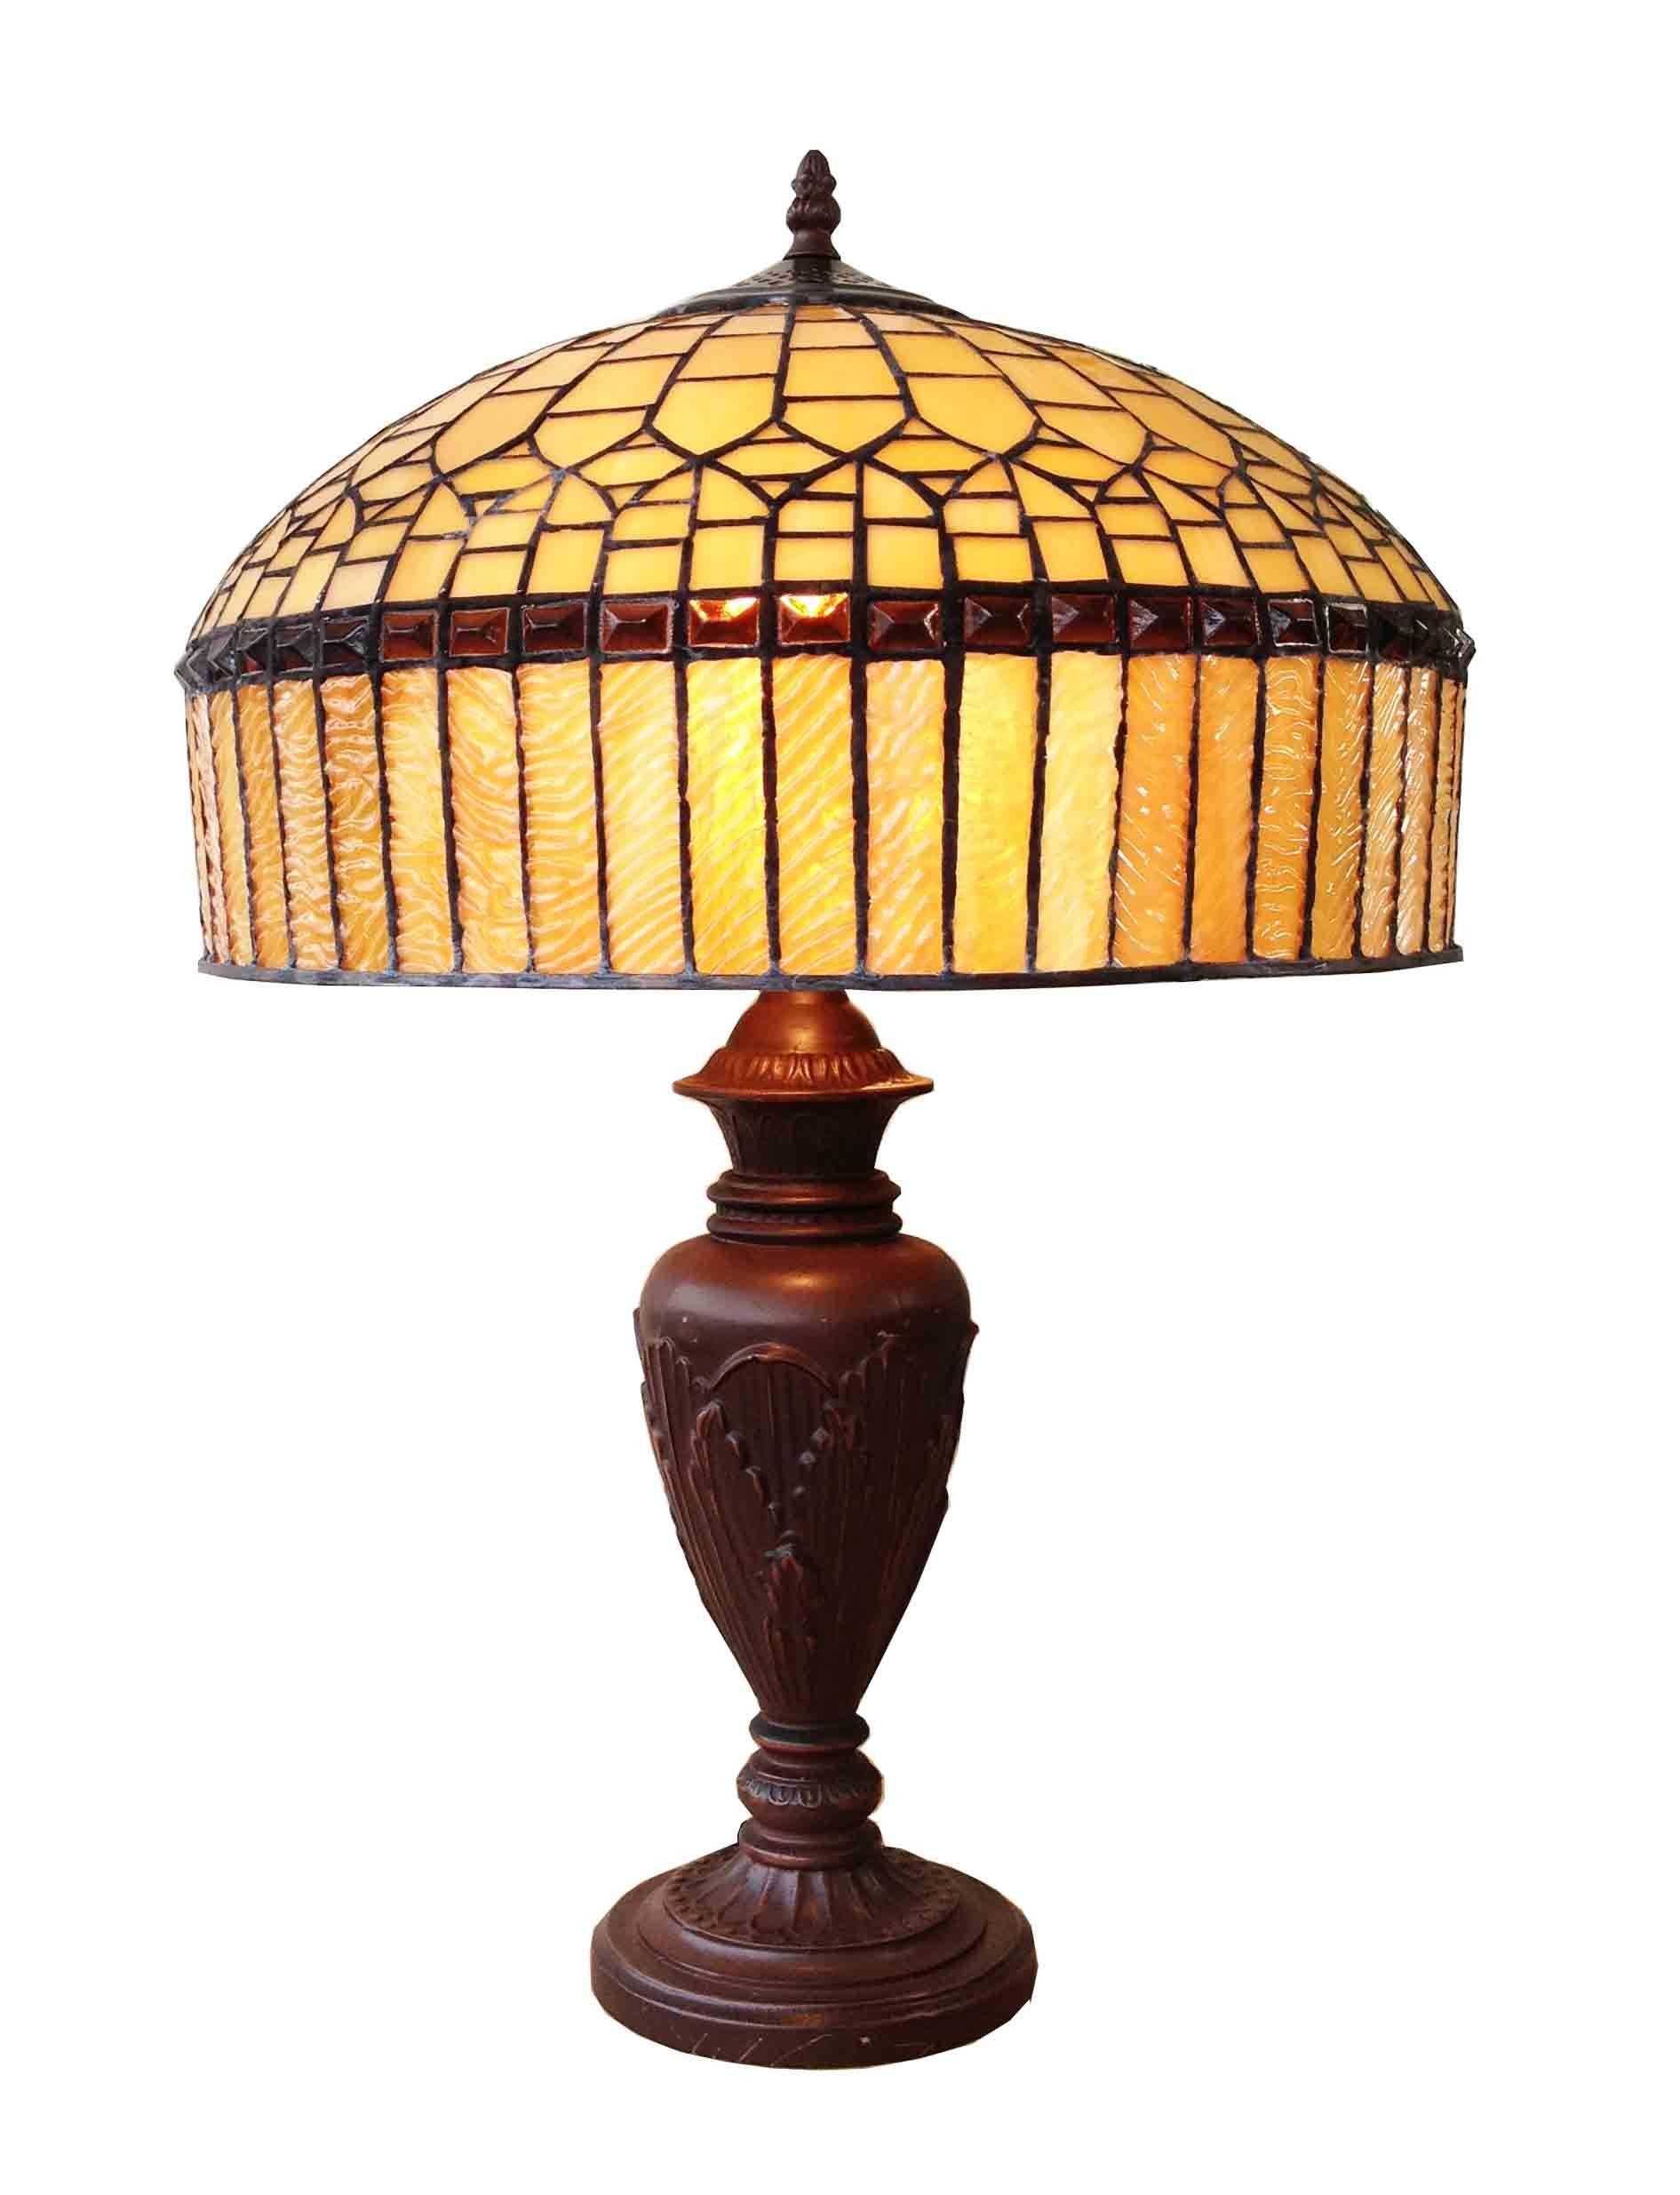 Pin On Tiffany Table Lamps